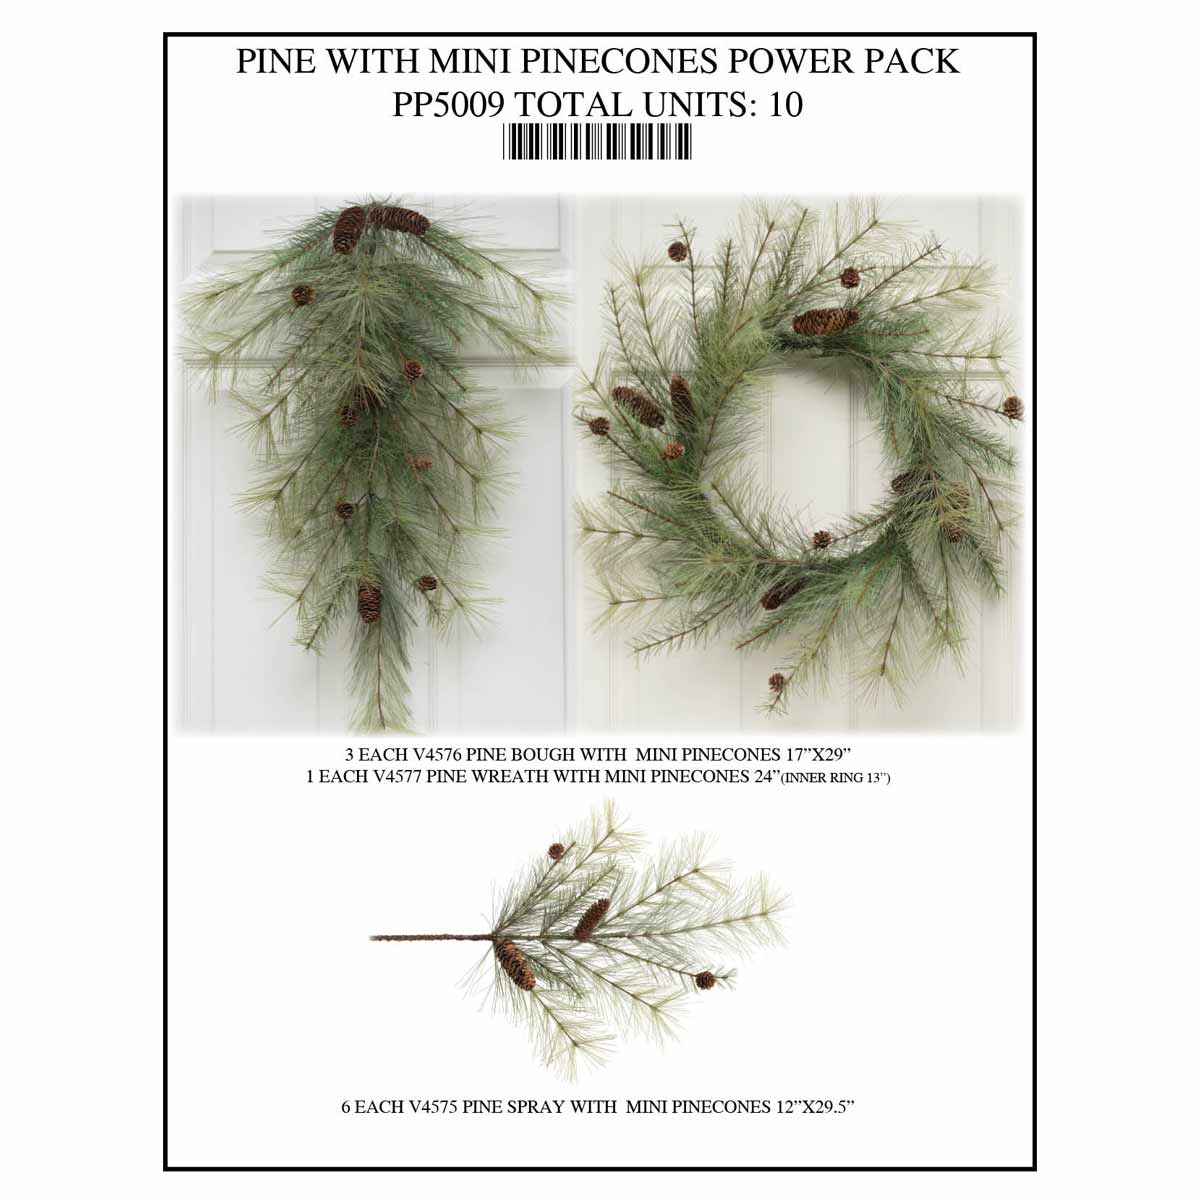 PINE W/MIN PINE CONES POWER PACK 10 UNITS